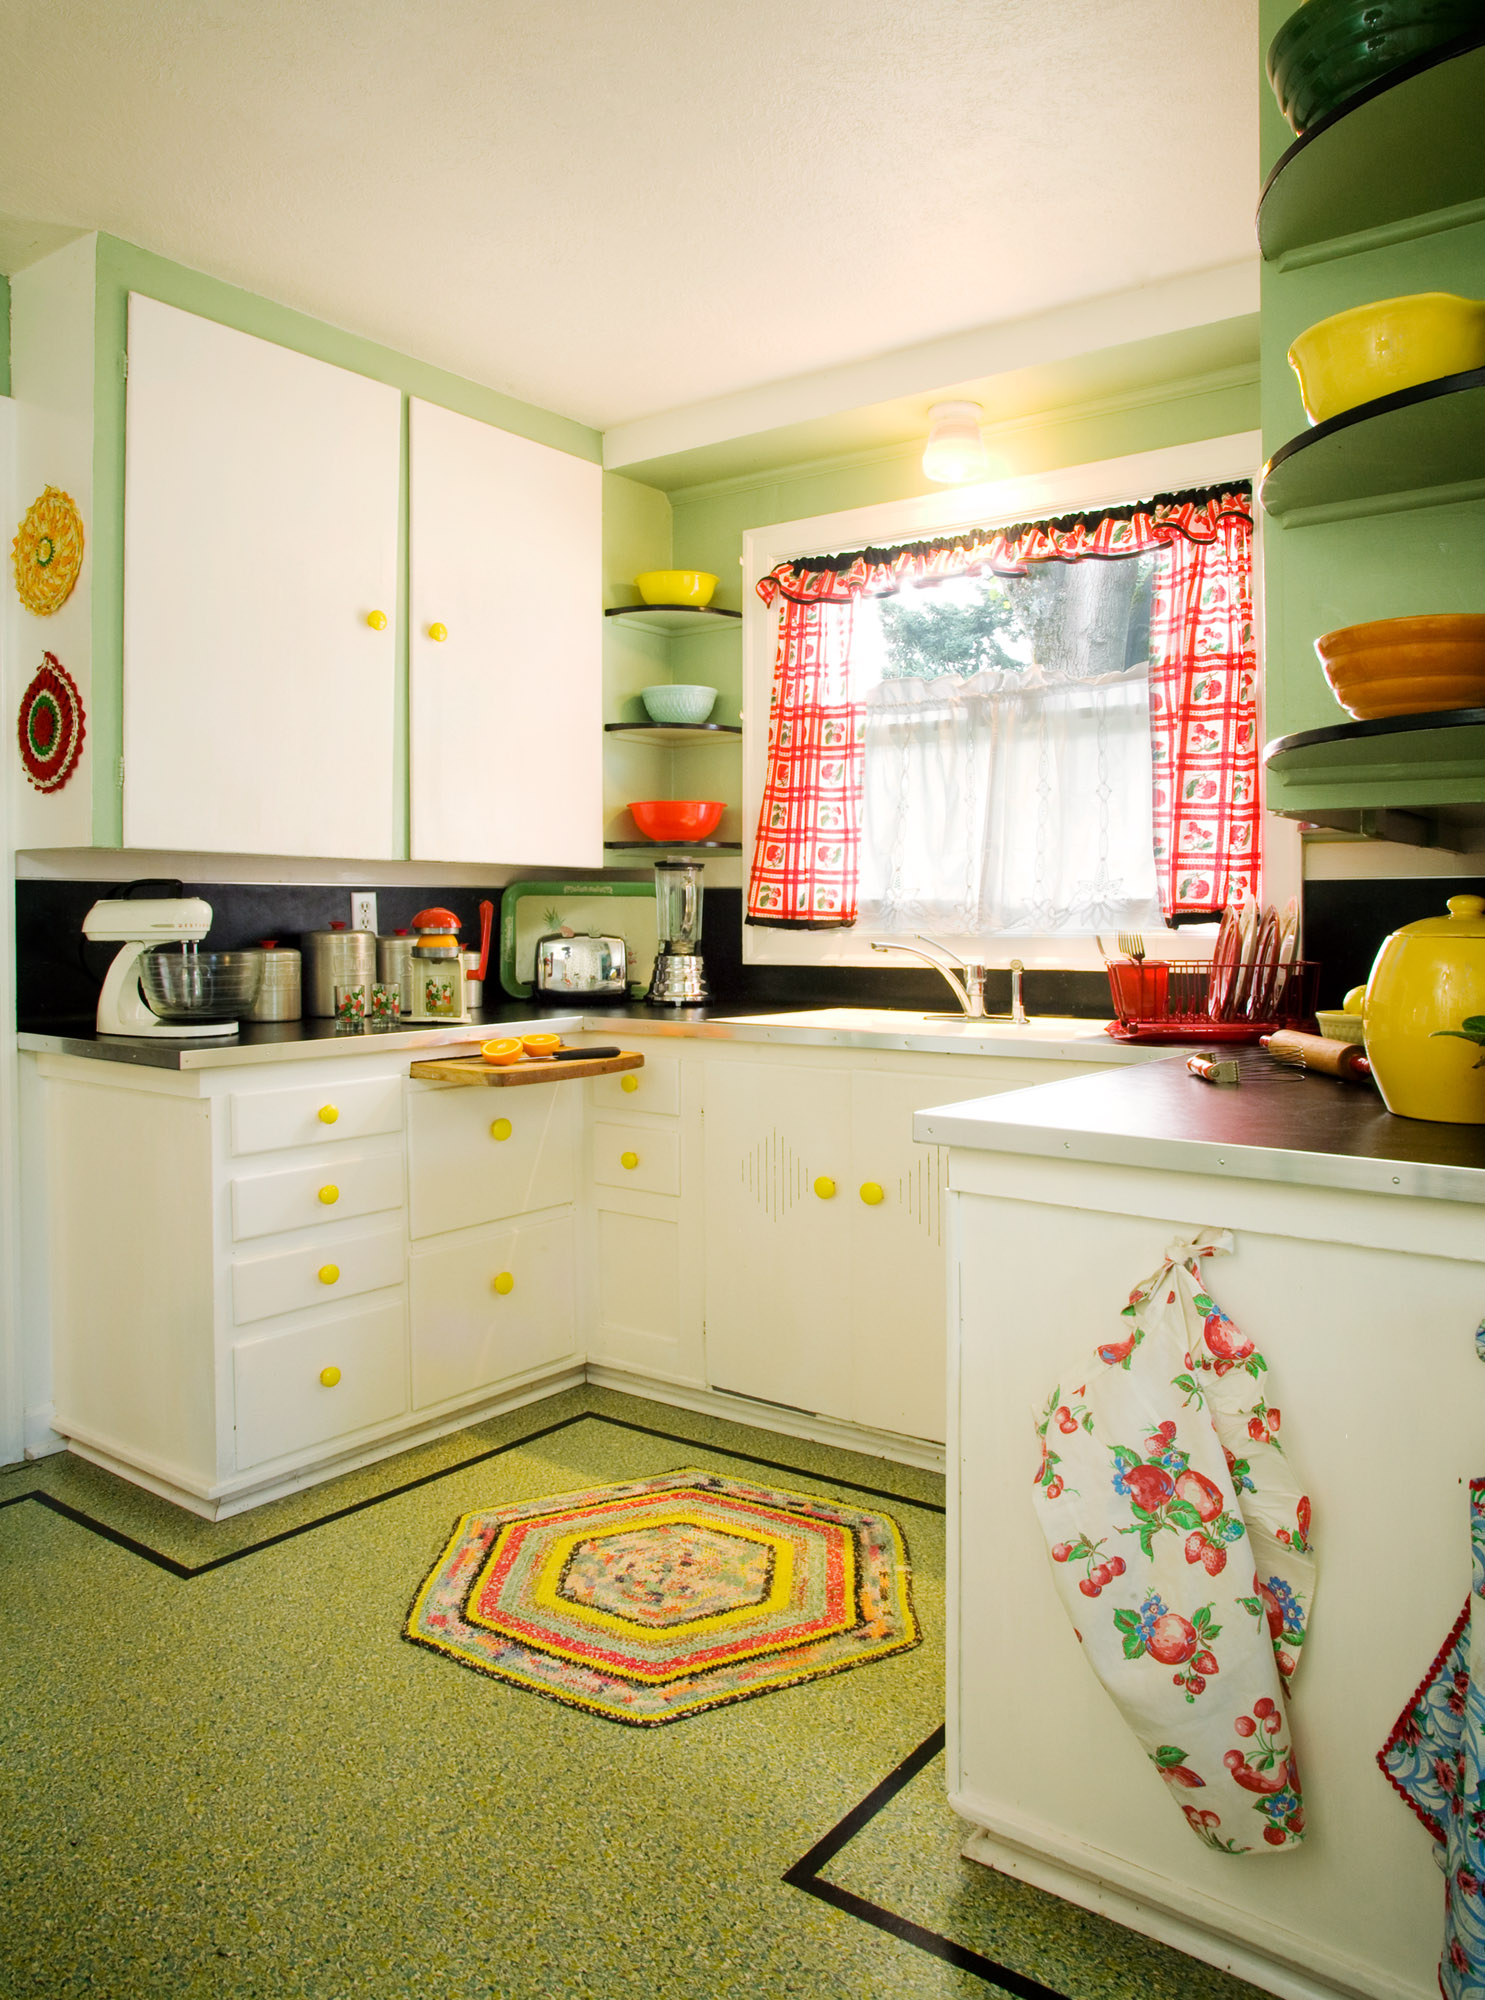 3. The near-original but worn kitchen was restored with Marmoleum flooring and countertops.